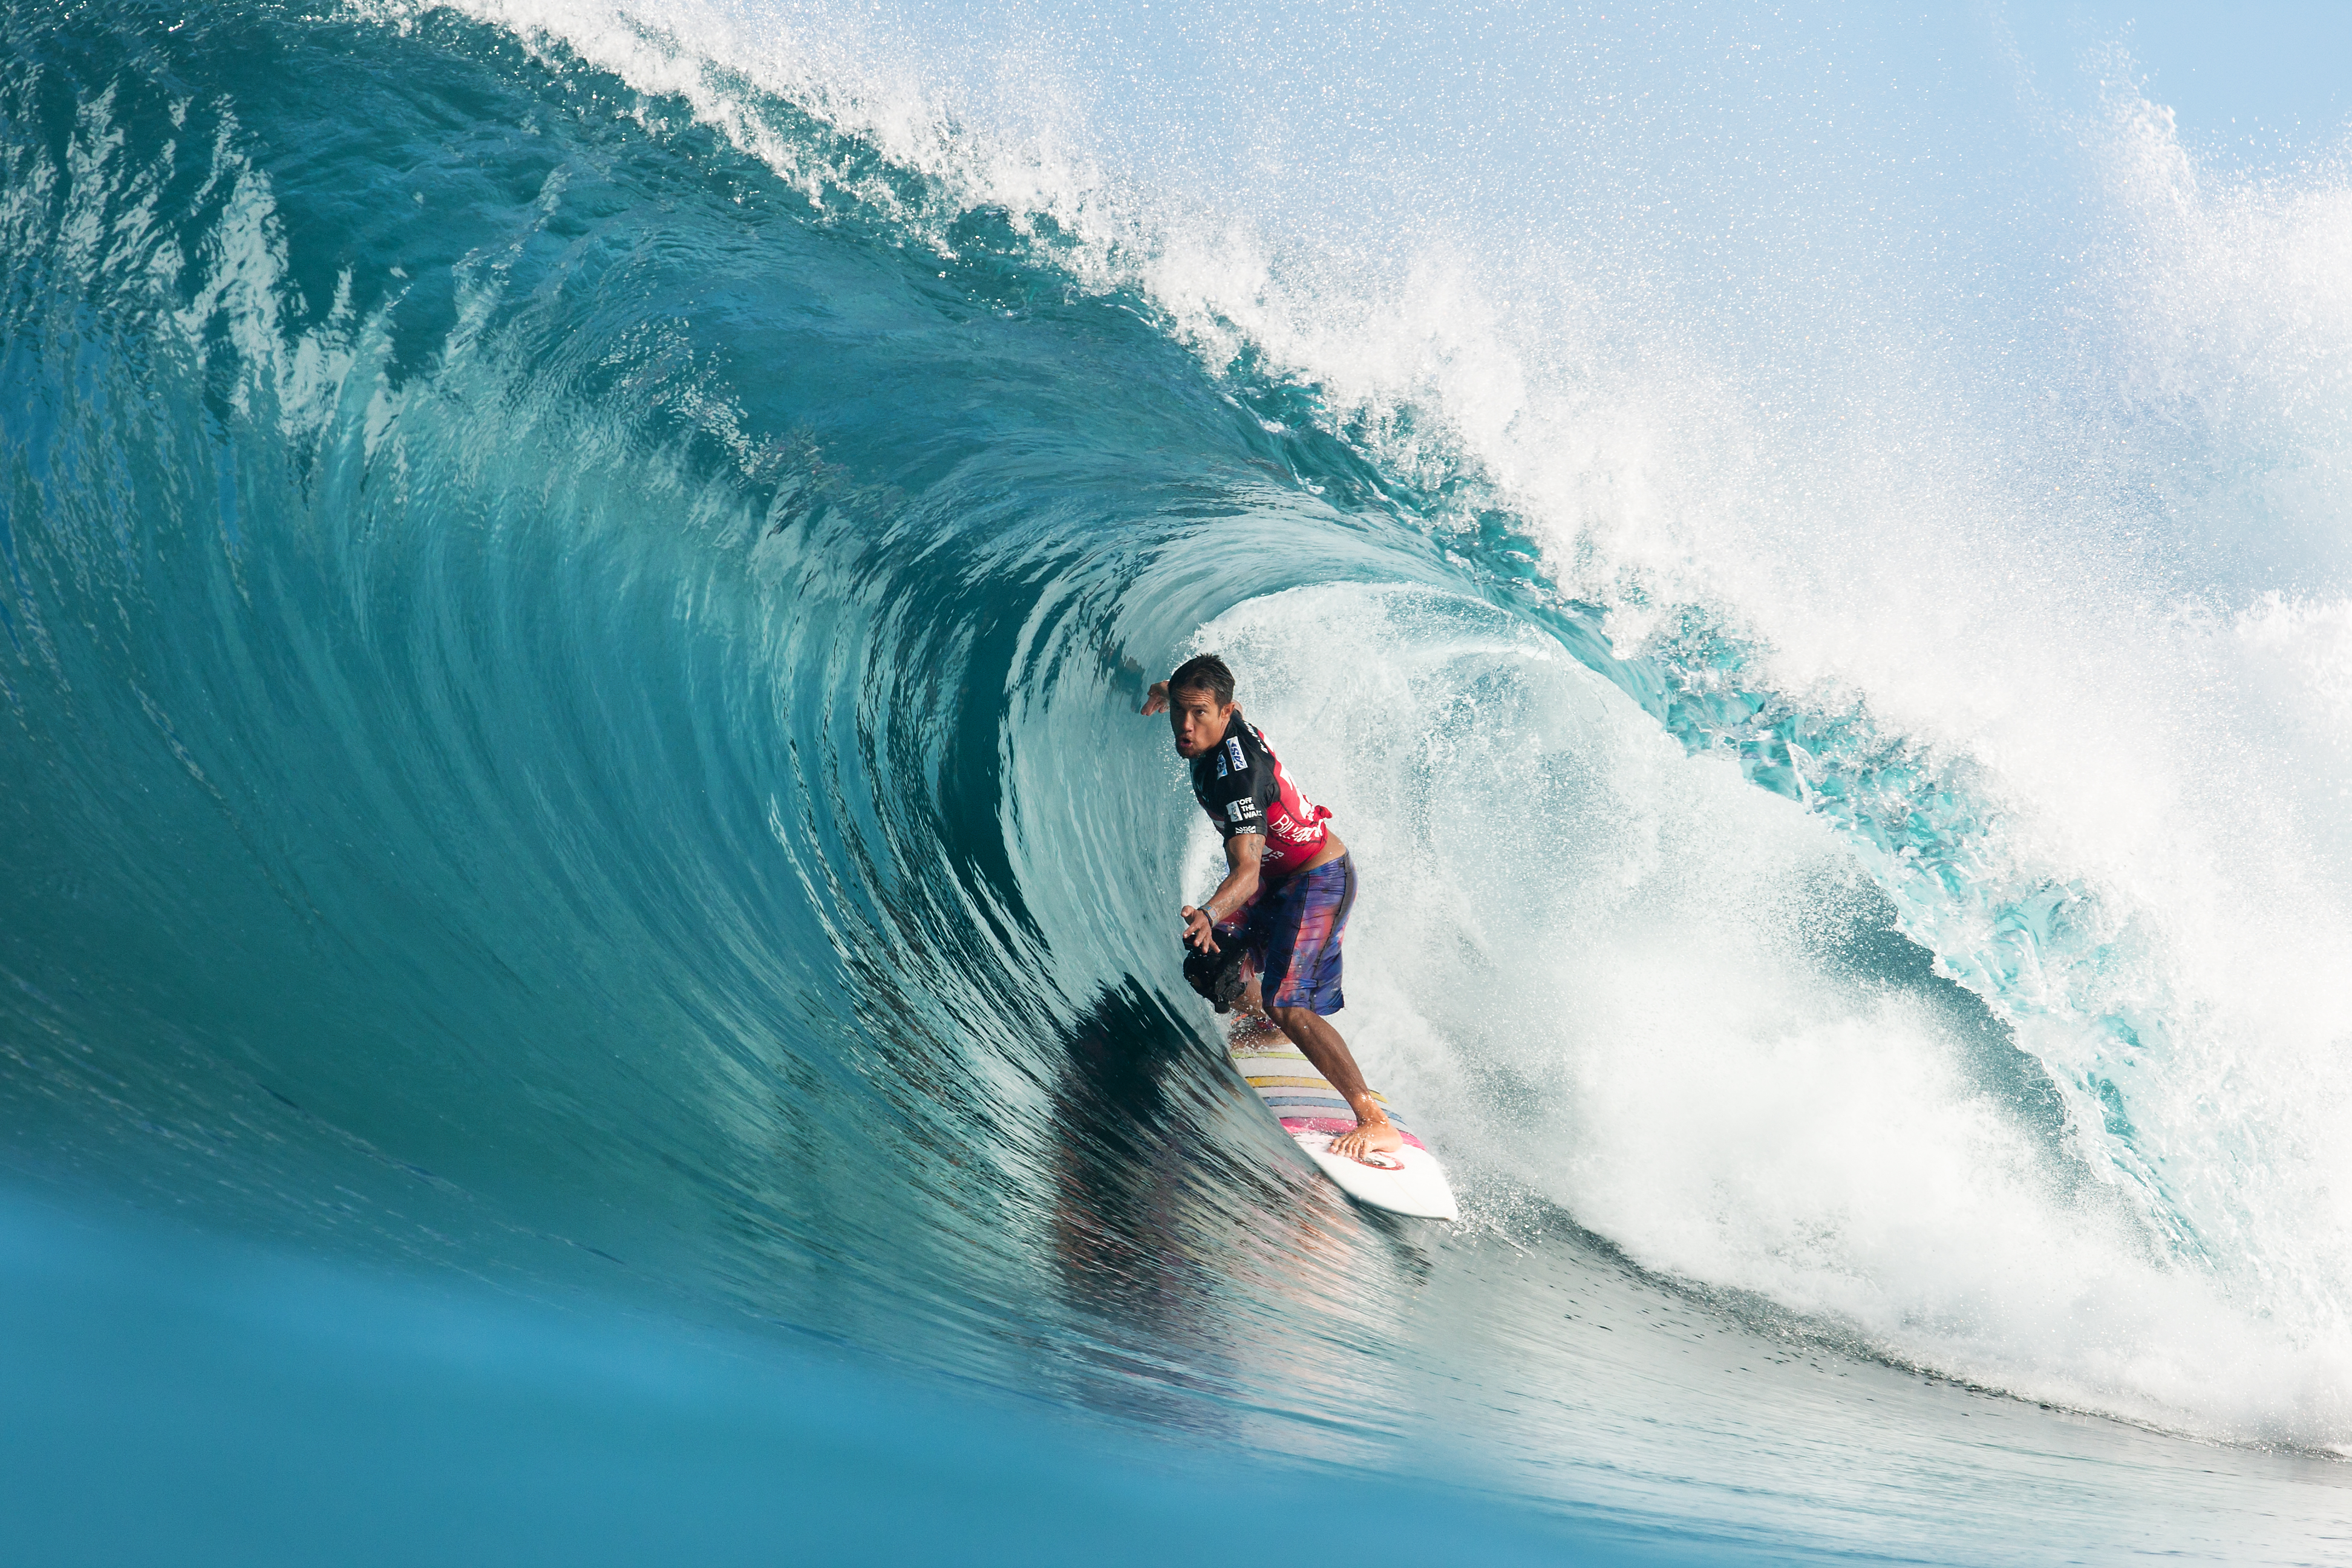 Hawaii Vacation Tips What To Do What To Avoid CNN Travel - The 7 best beaches for winter surfing